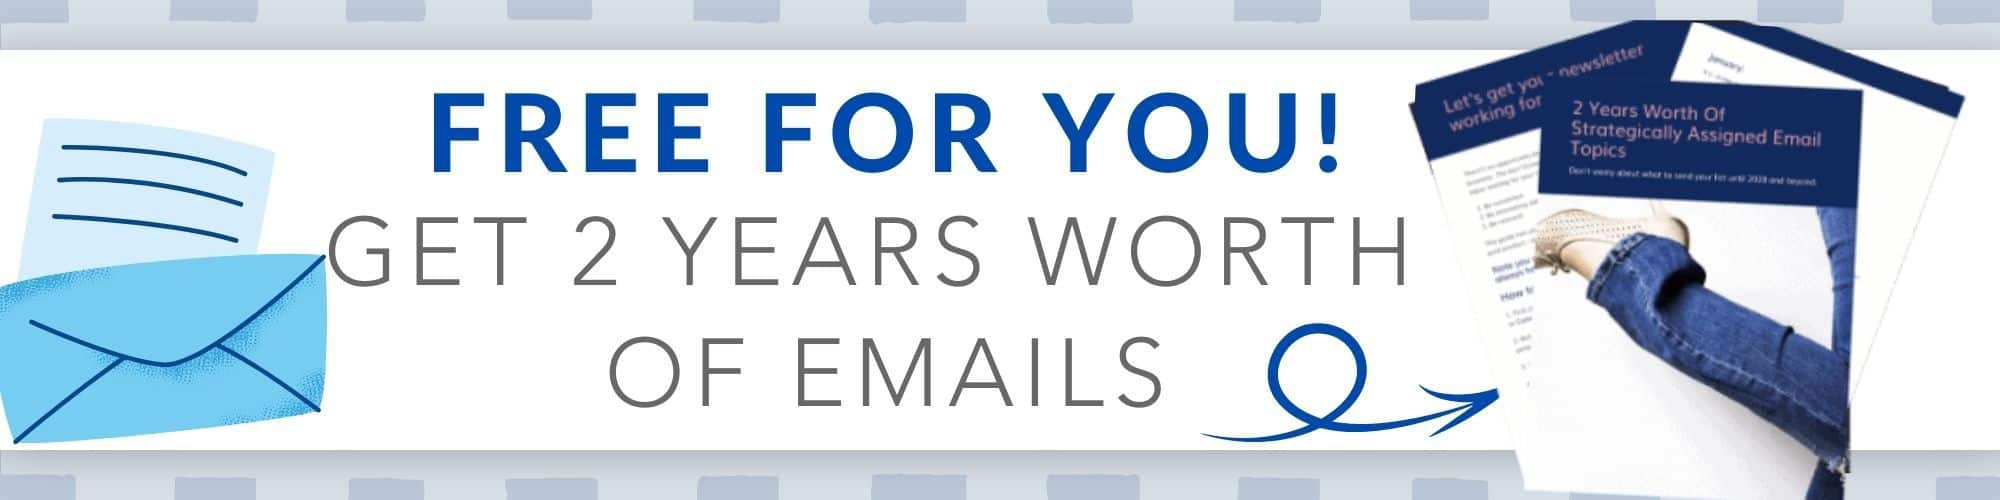 Here is a list of over 2 years worth of emails to send your email list this year.